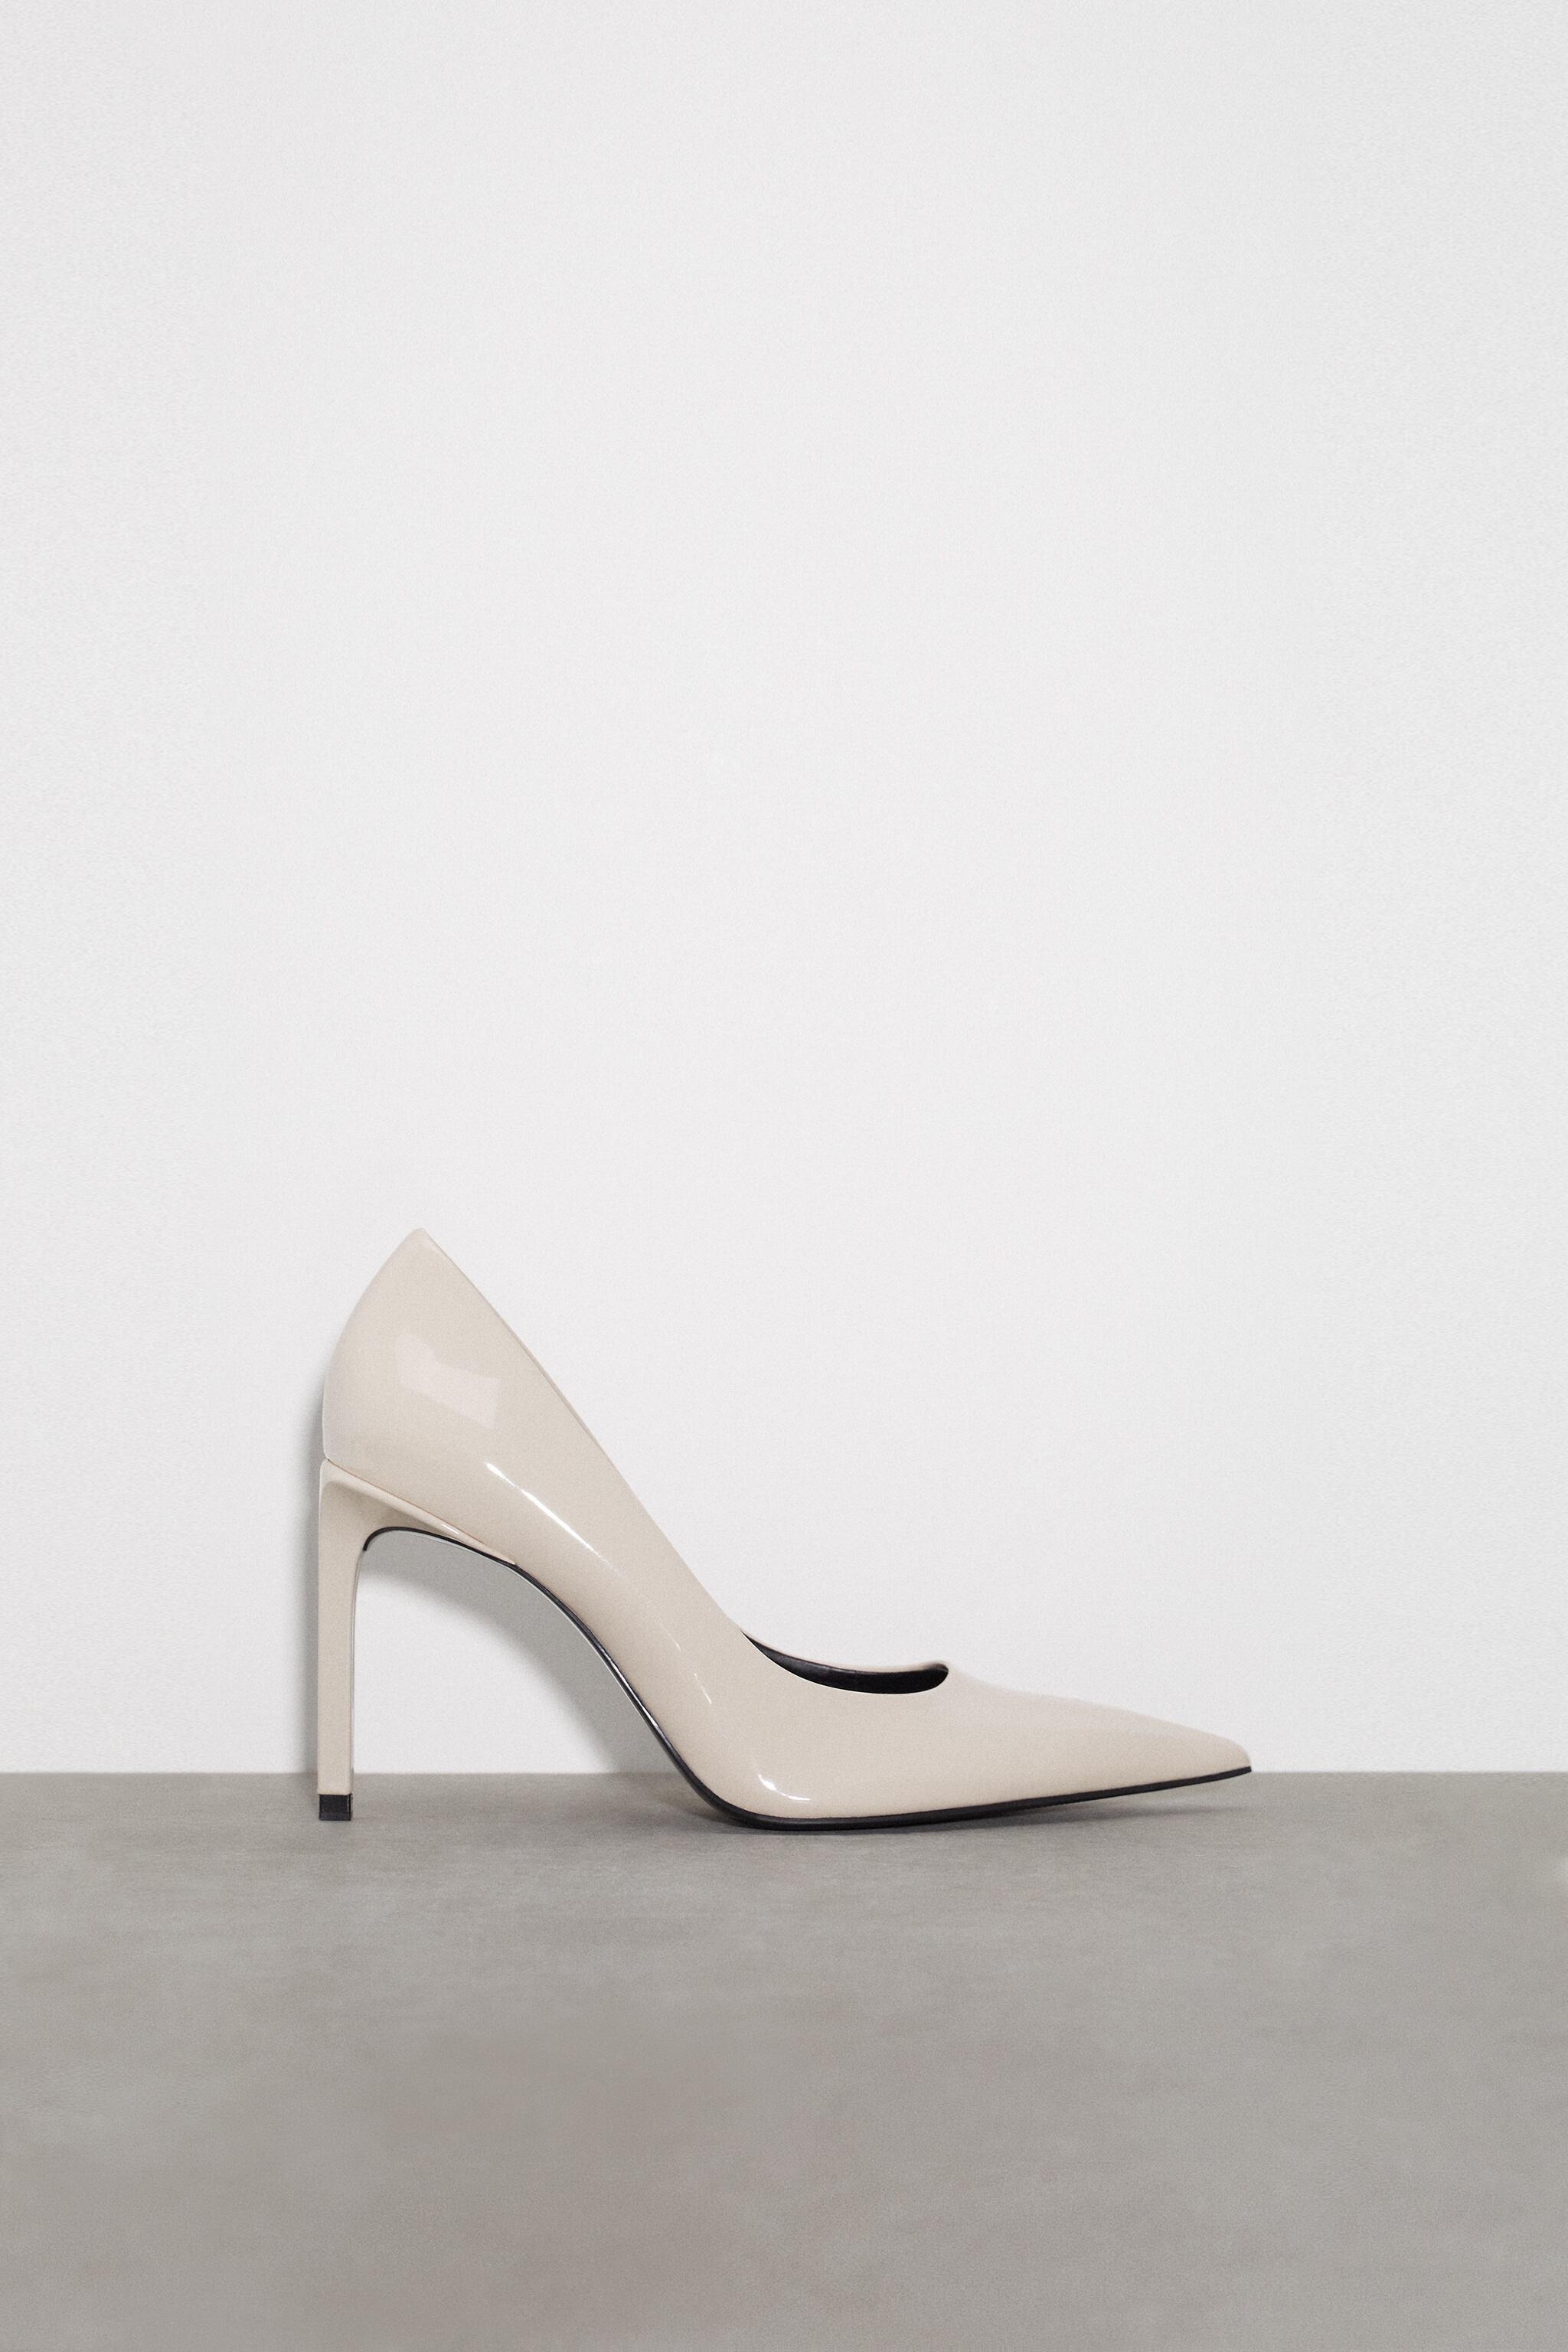 PATENT FINISH POINTED TOE HEELS 2